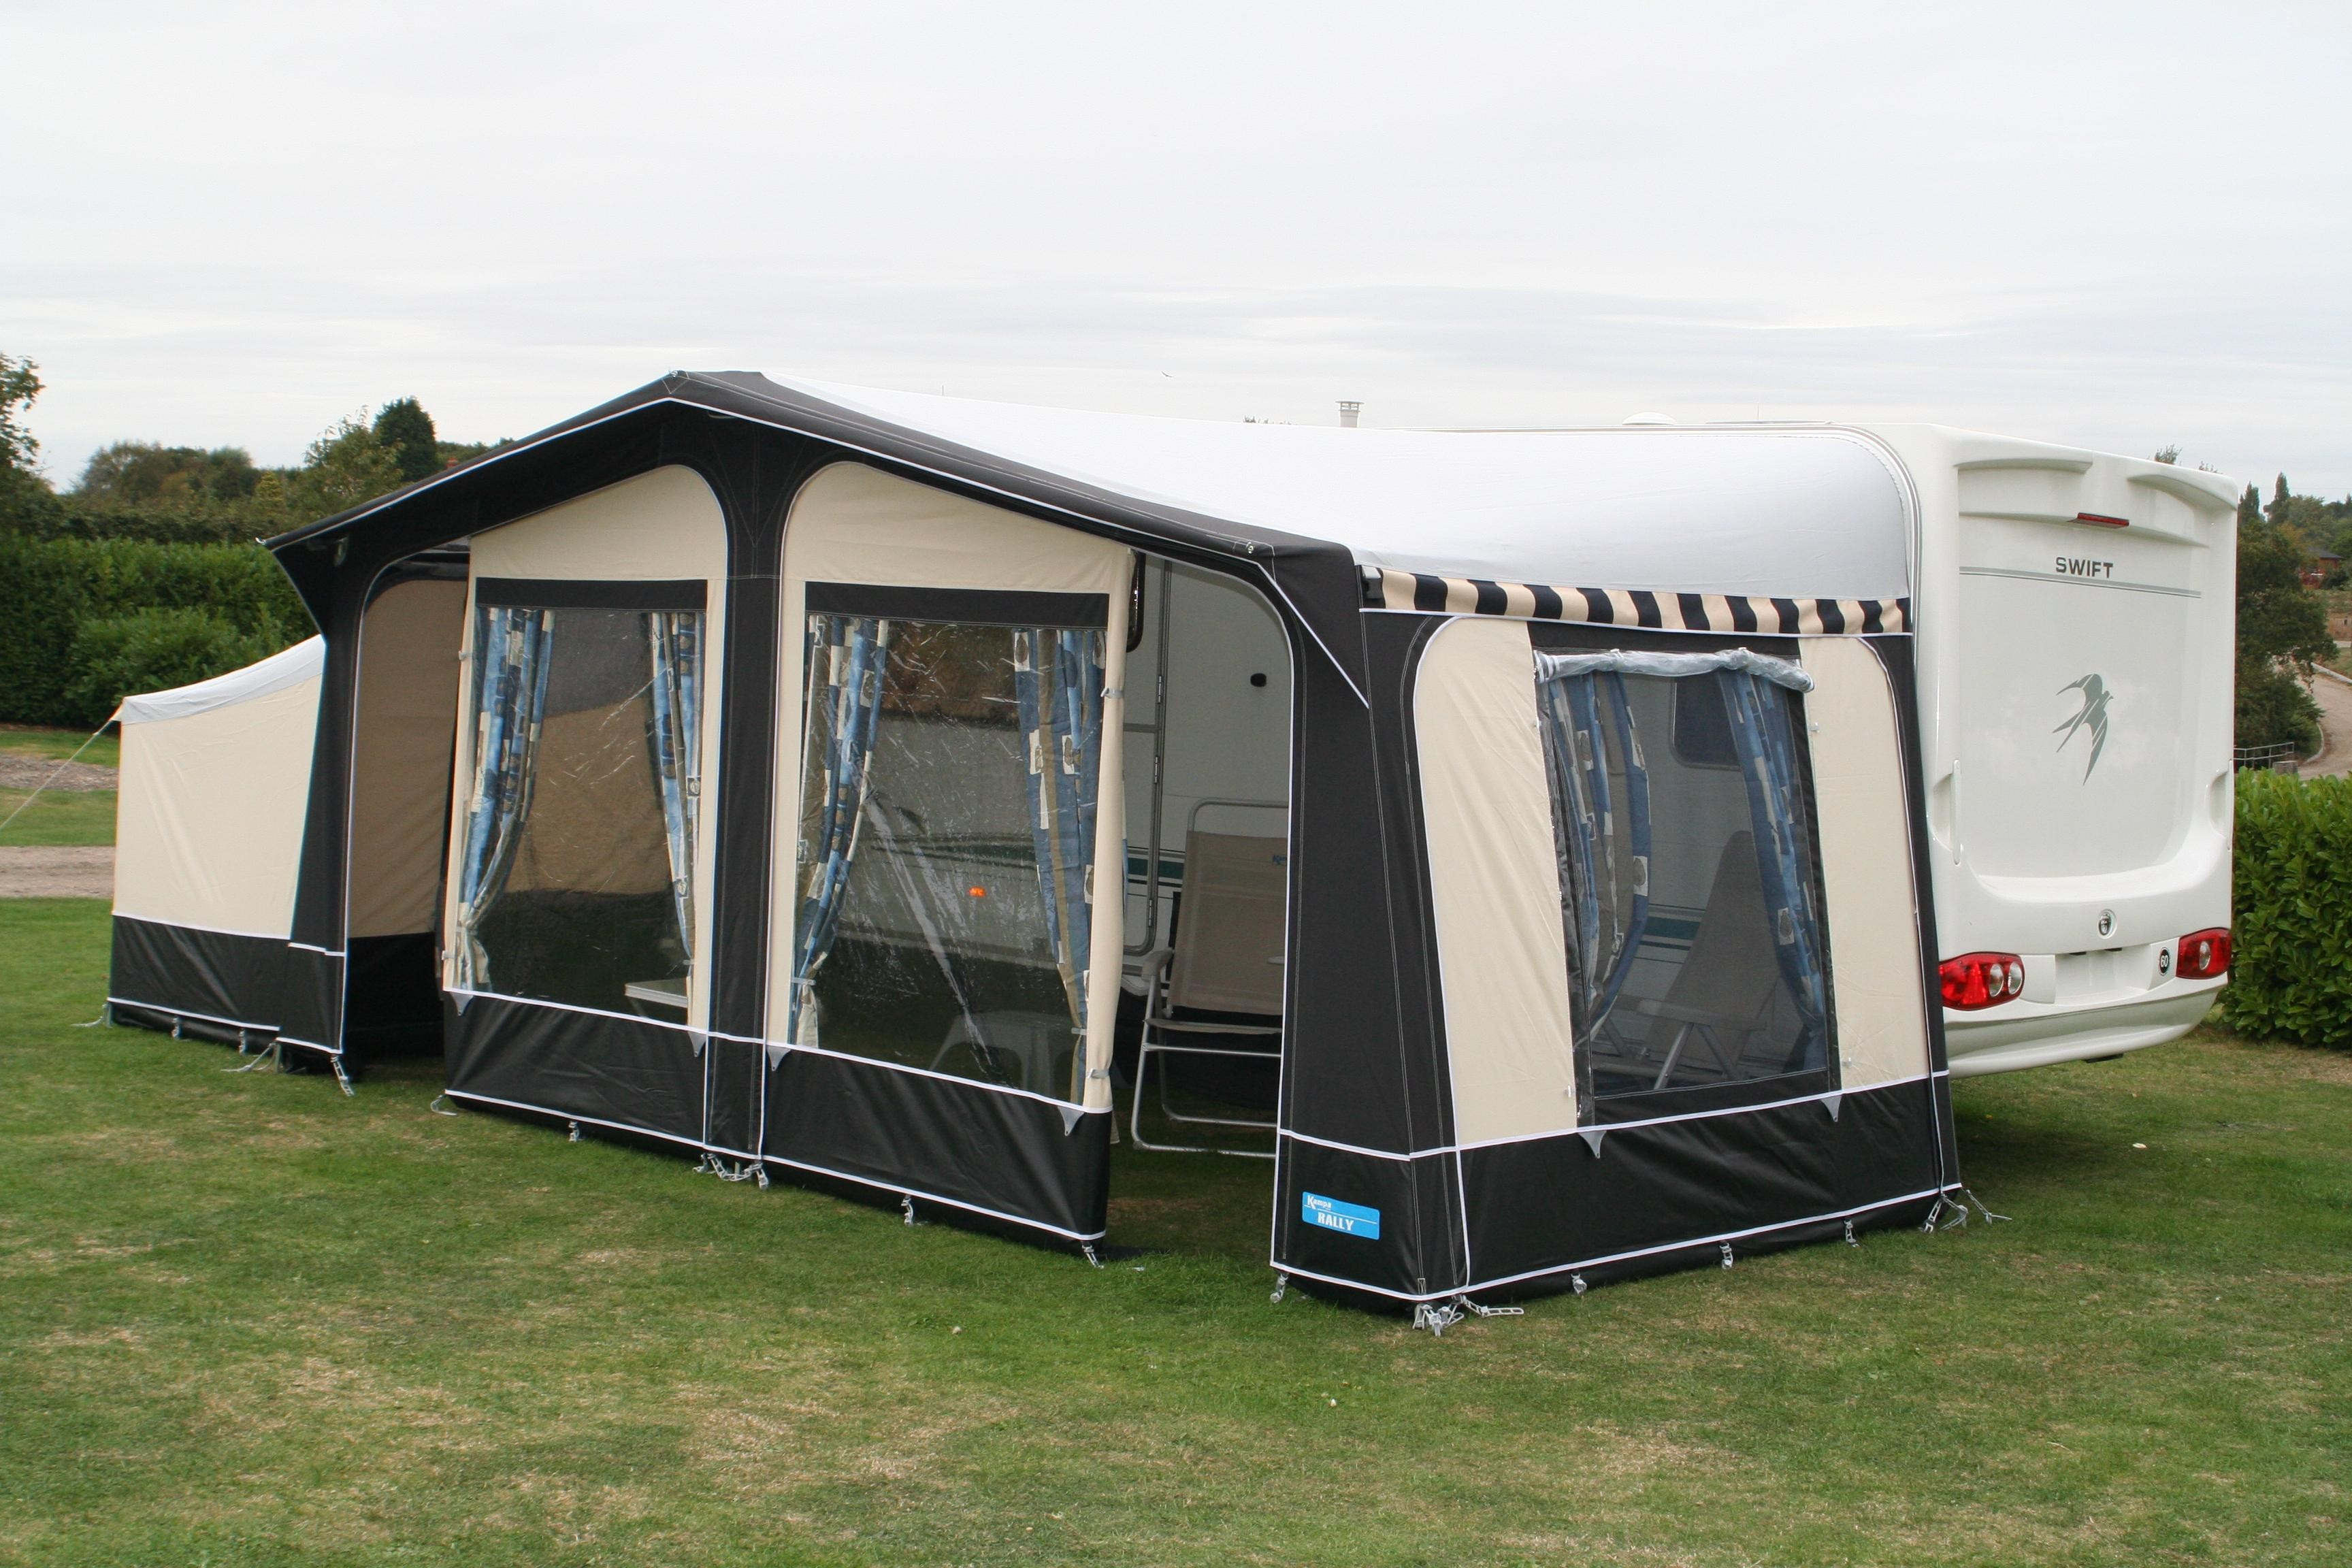 Kampa Carnival Awning - 800 (Size 7) from Kampa for £693.24